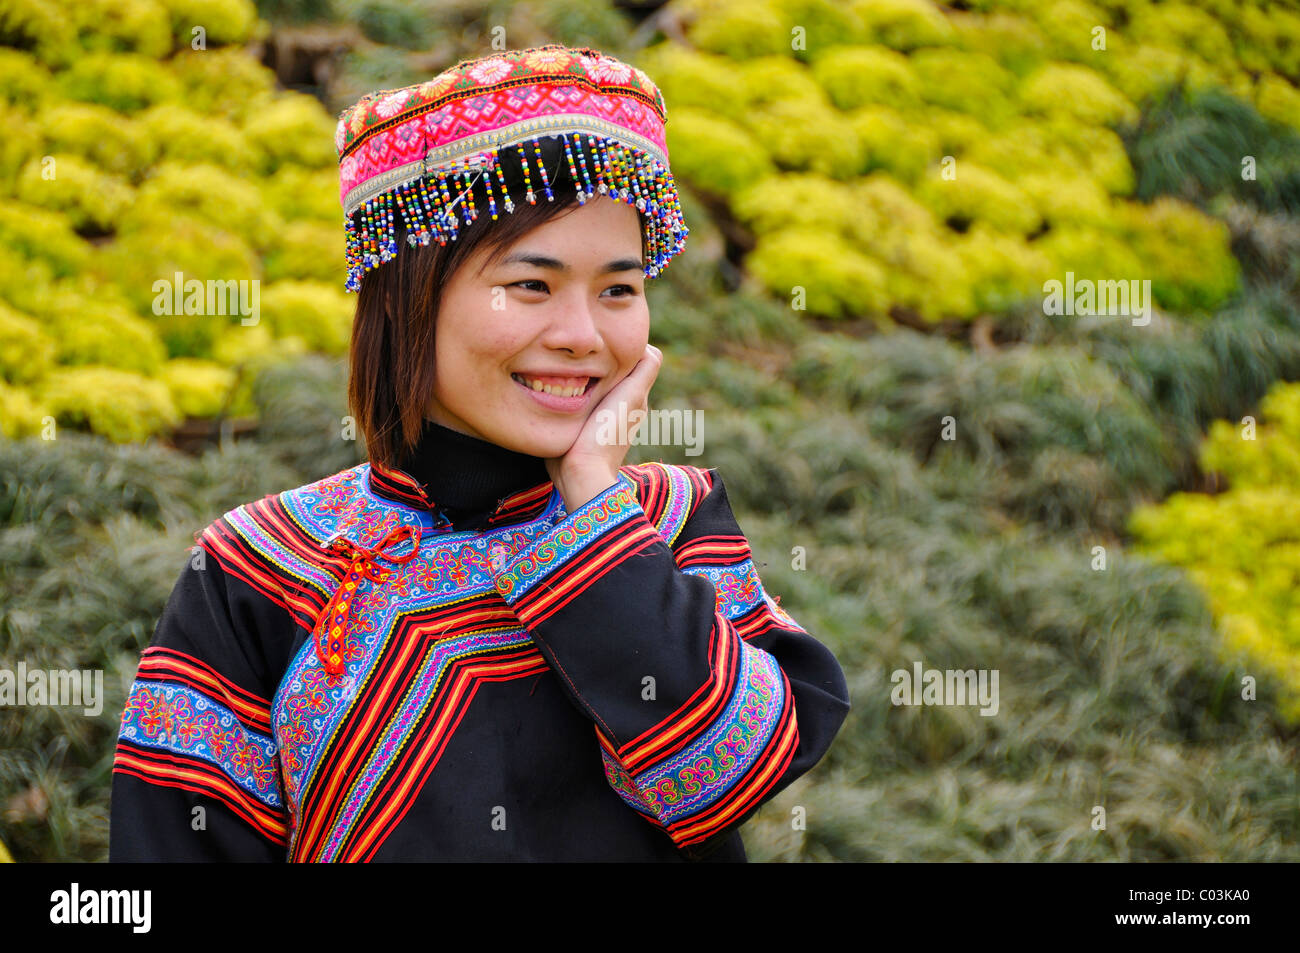 Le port d'un costume traditionnel de tourisme, SAPA, Vietnam, Asie Photo Stock